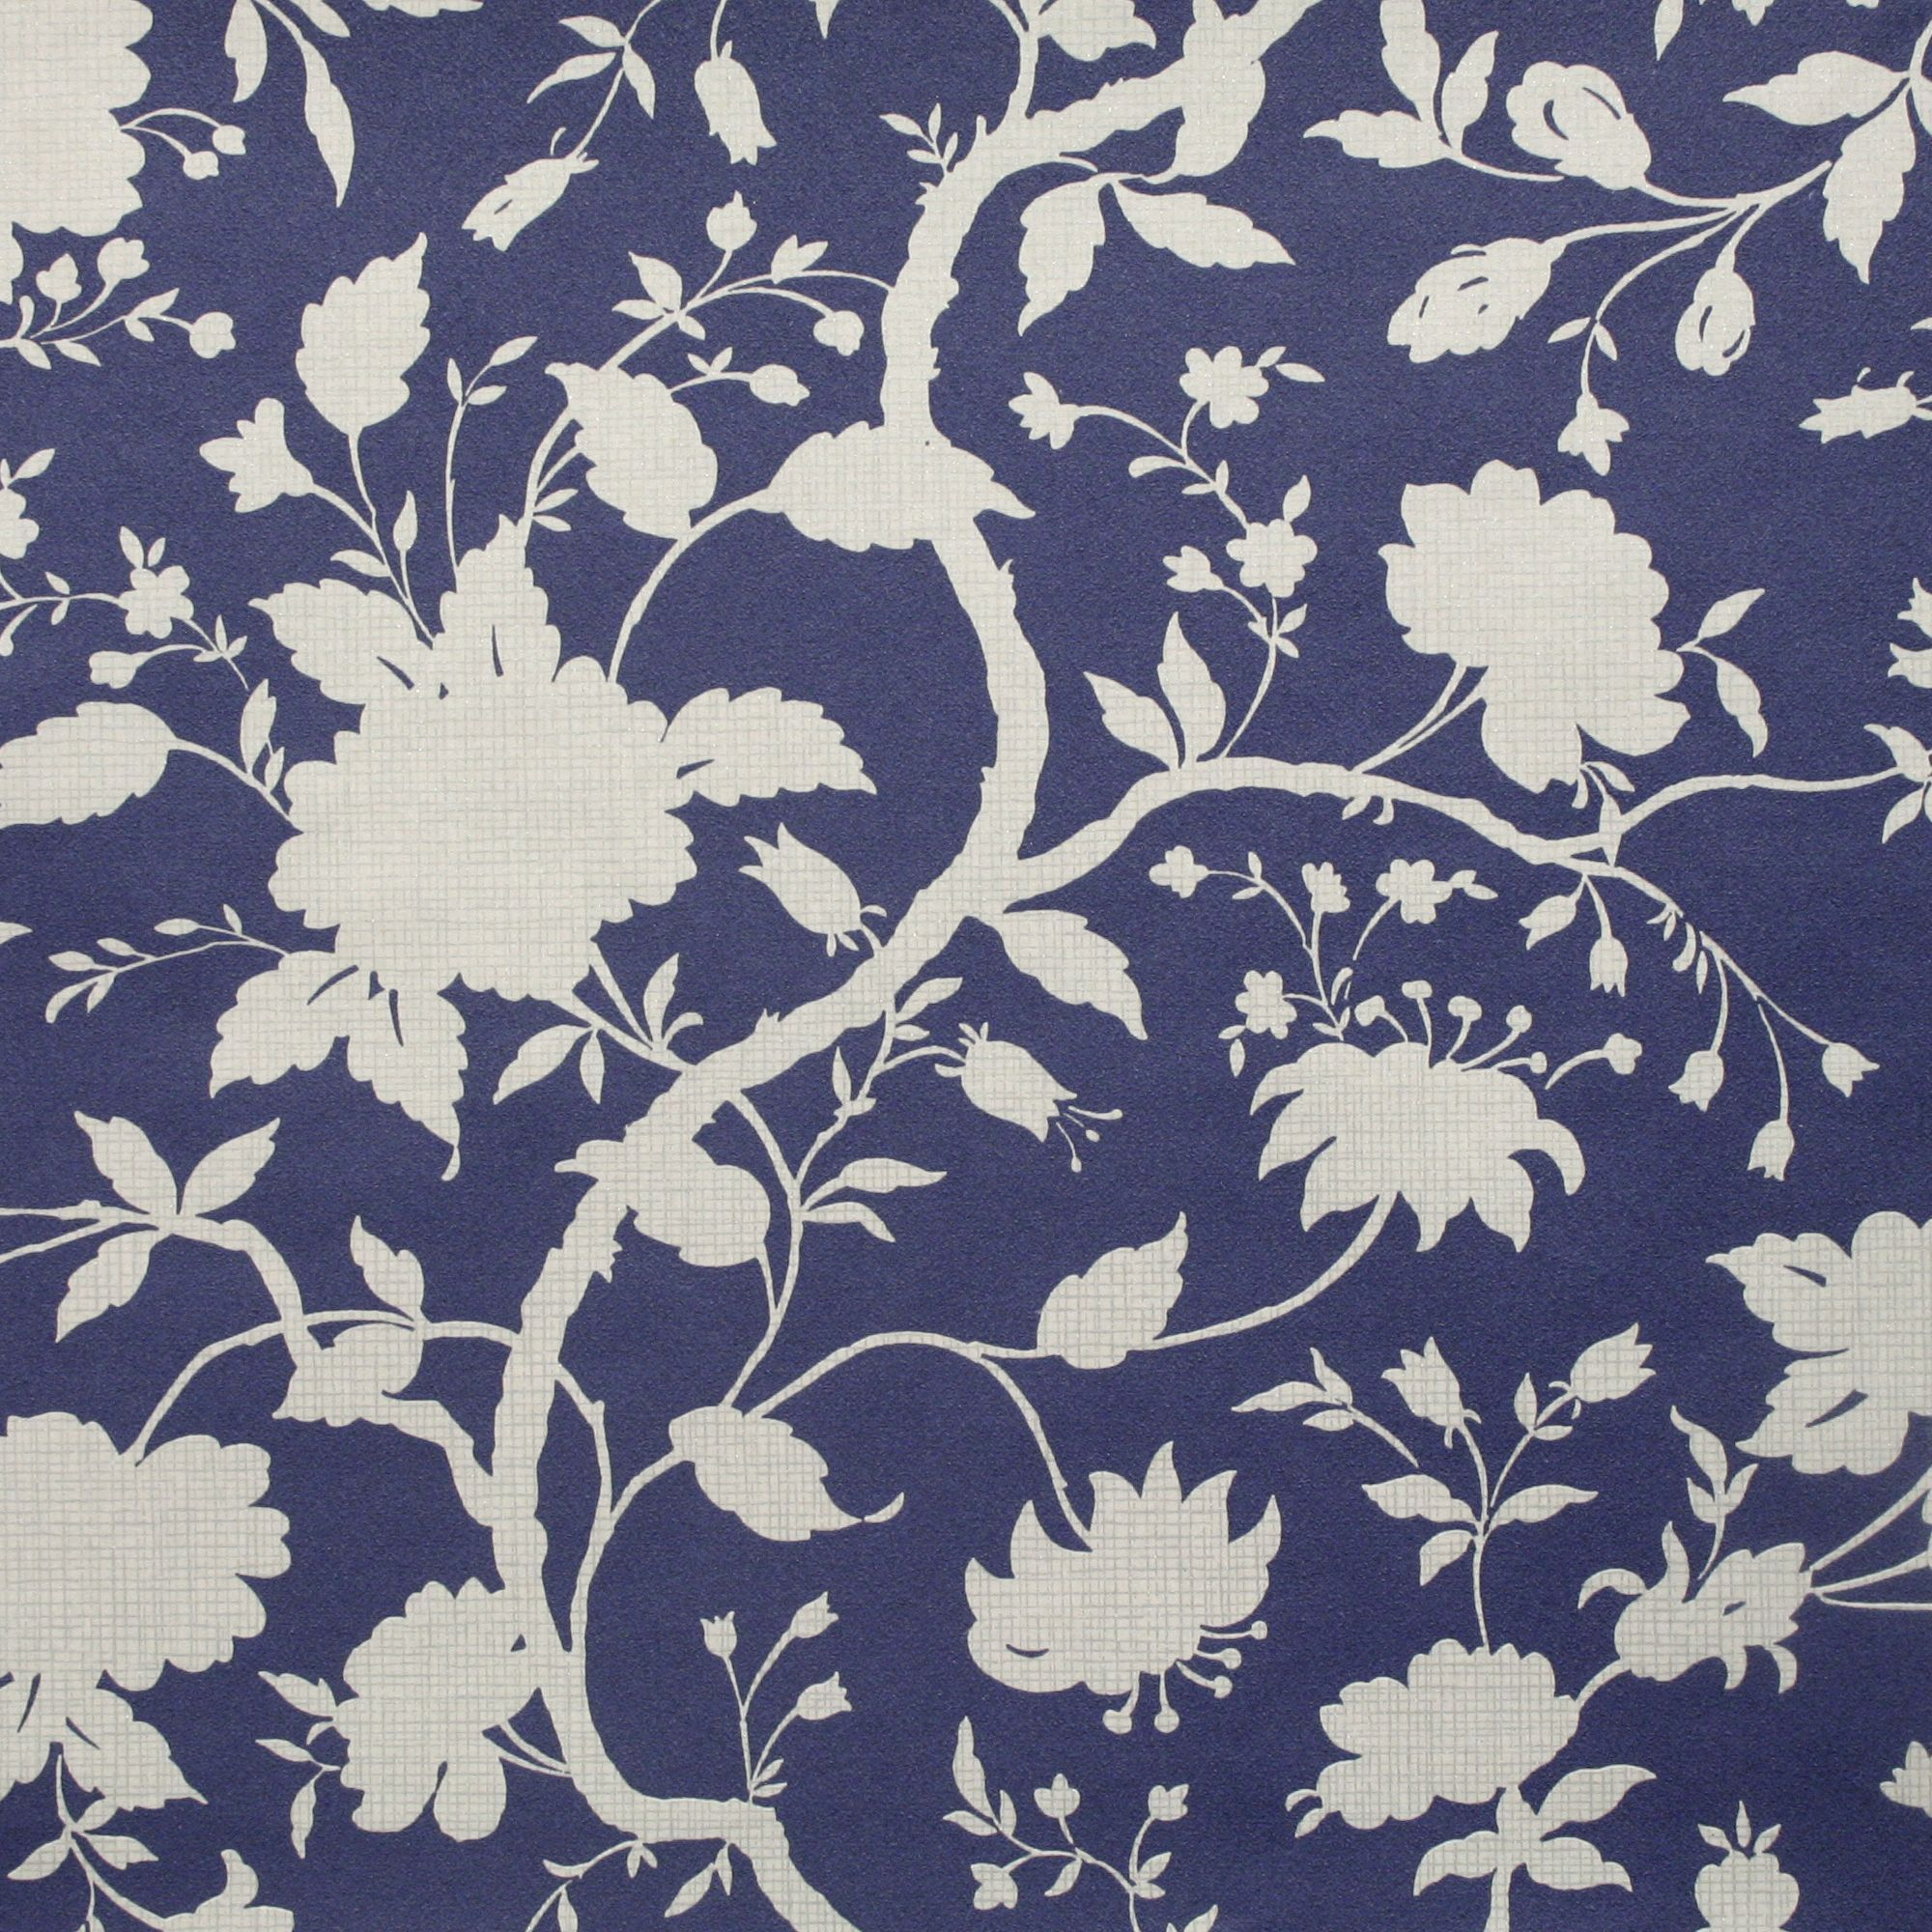 Pattern Name: Botanical Floral - Pattern Number: 32-332 - Book Name: Kelly Hoppen Style